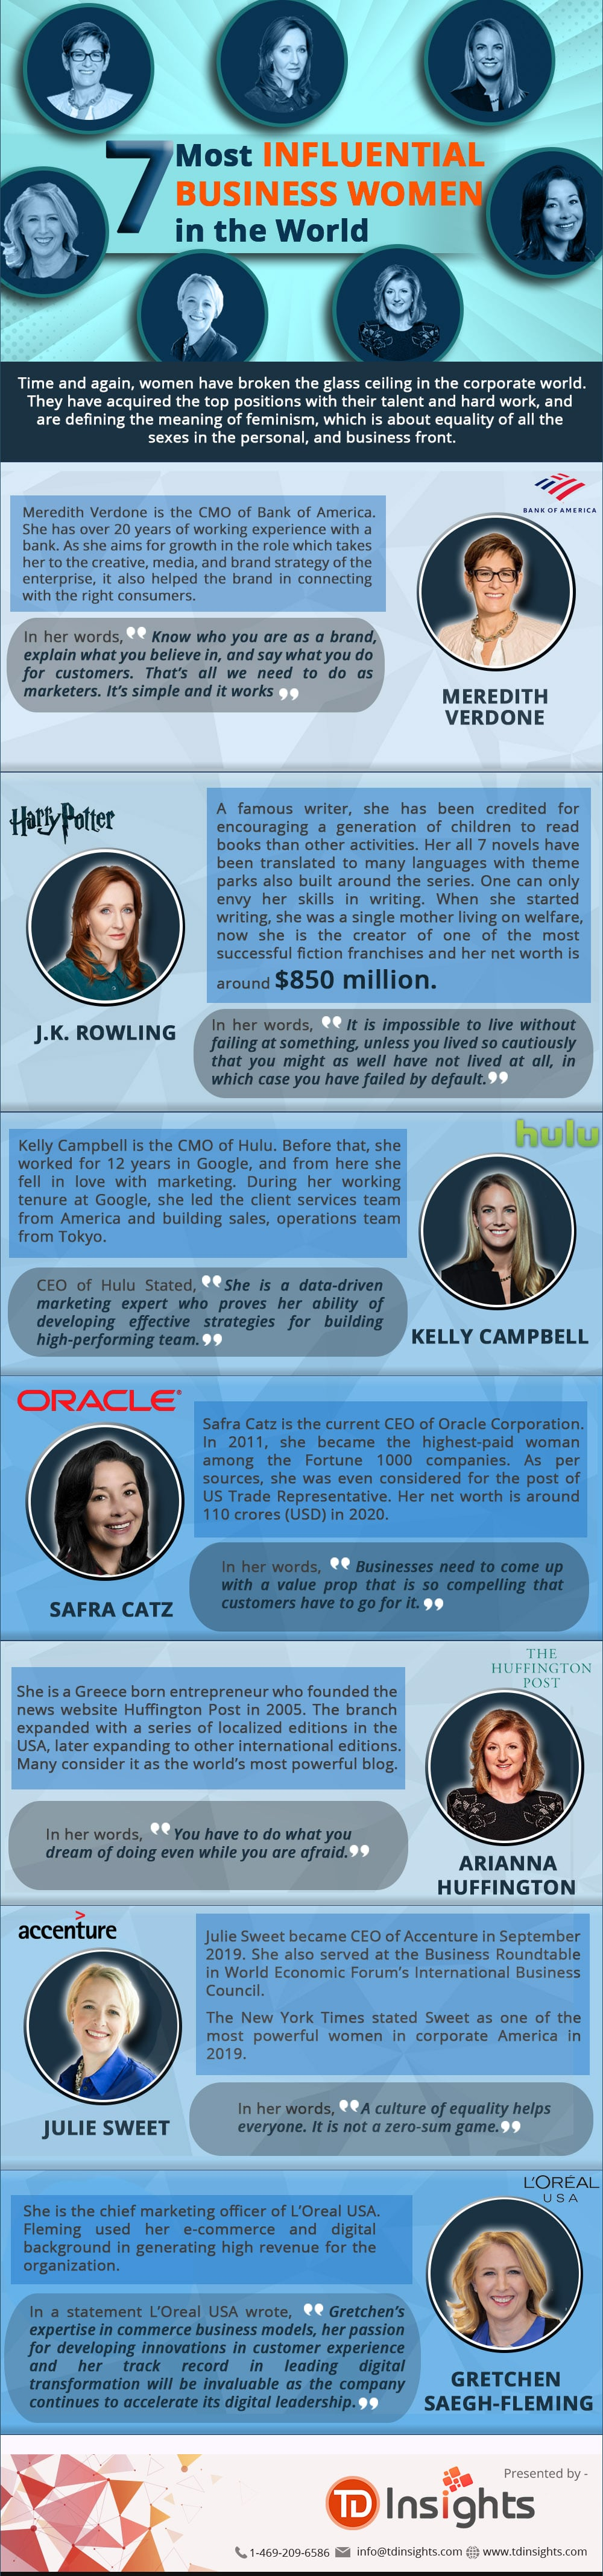 7 Most Influencing Business Women in the World